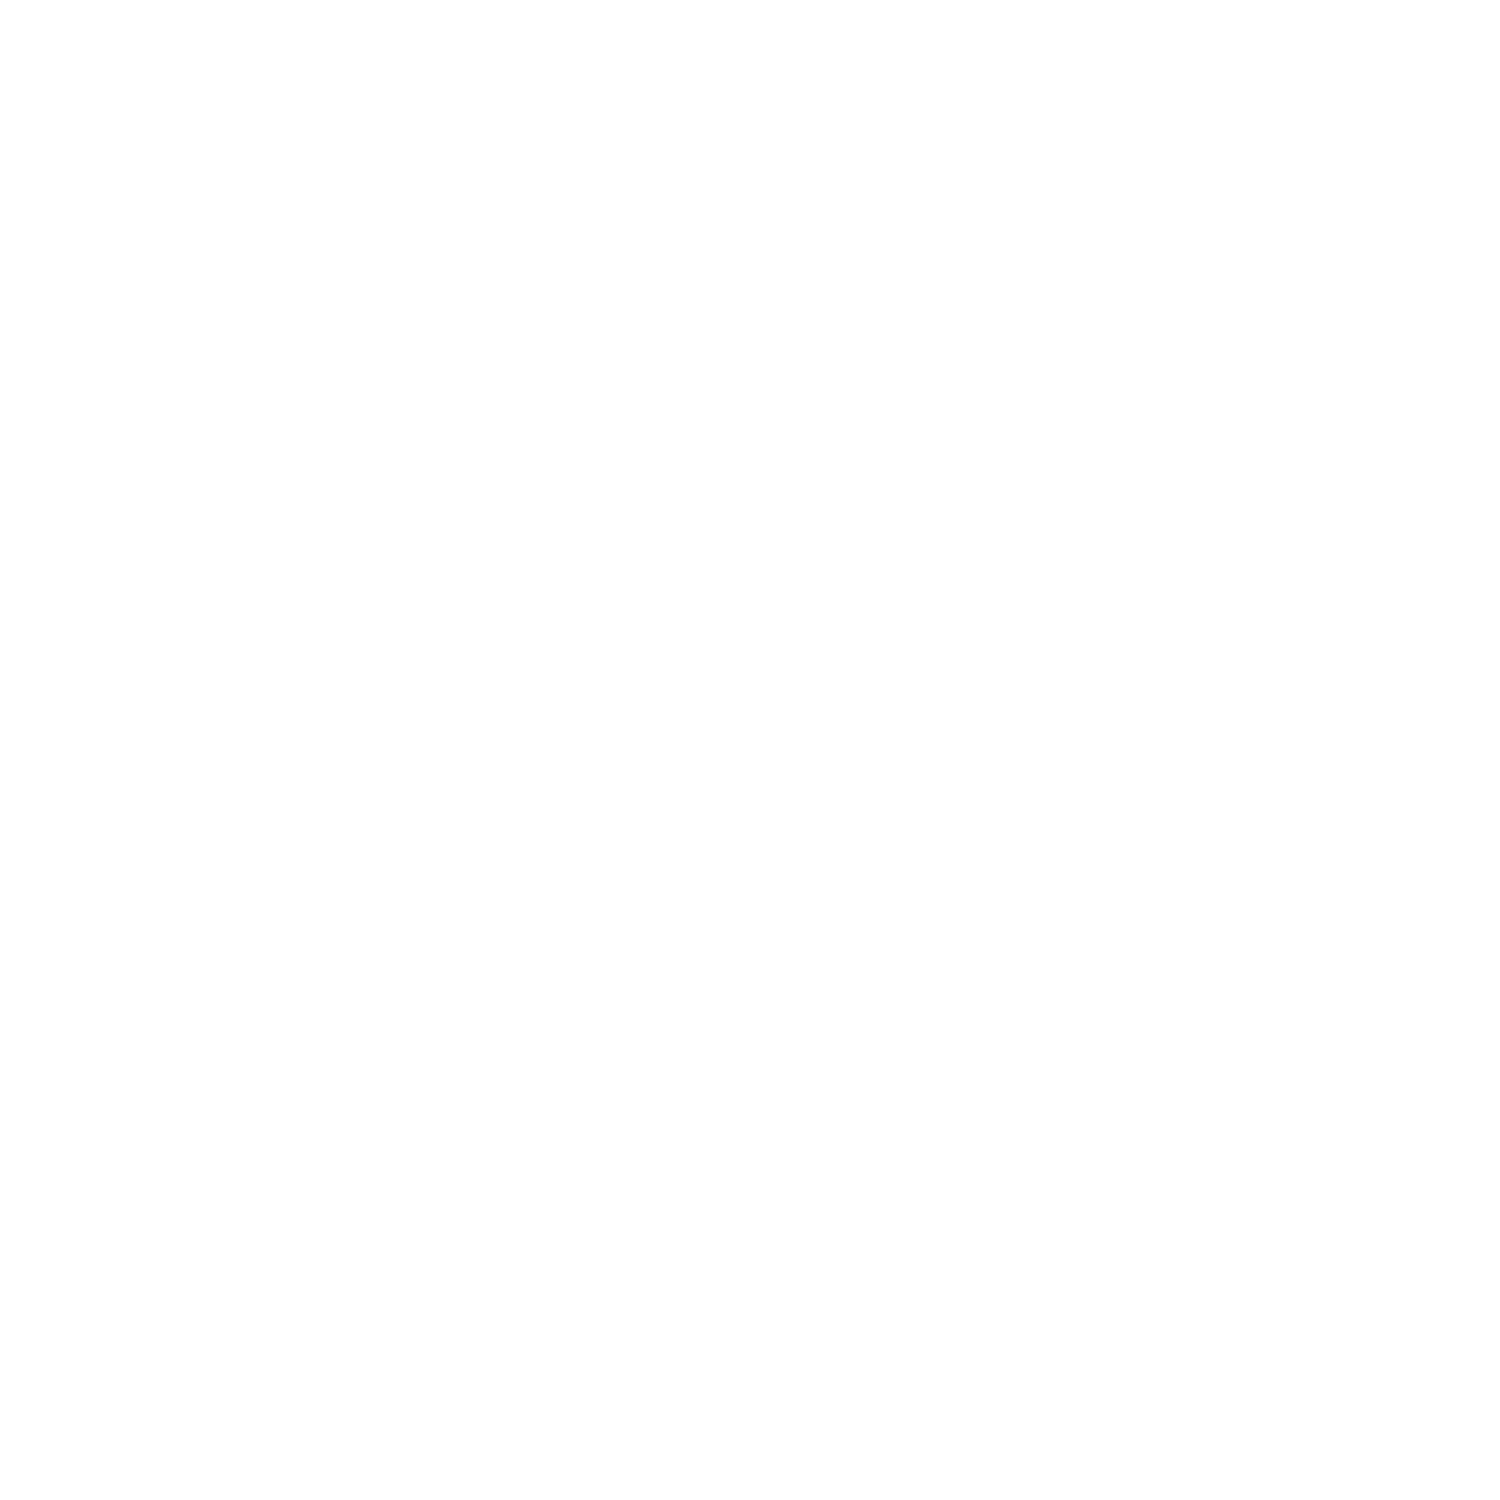 Foothill Foodie Tours